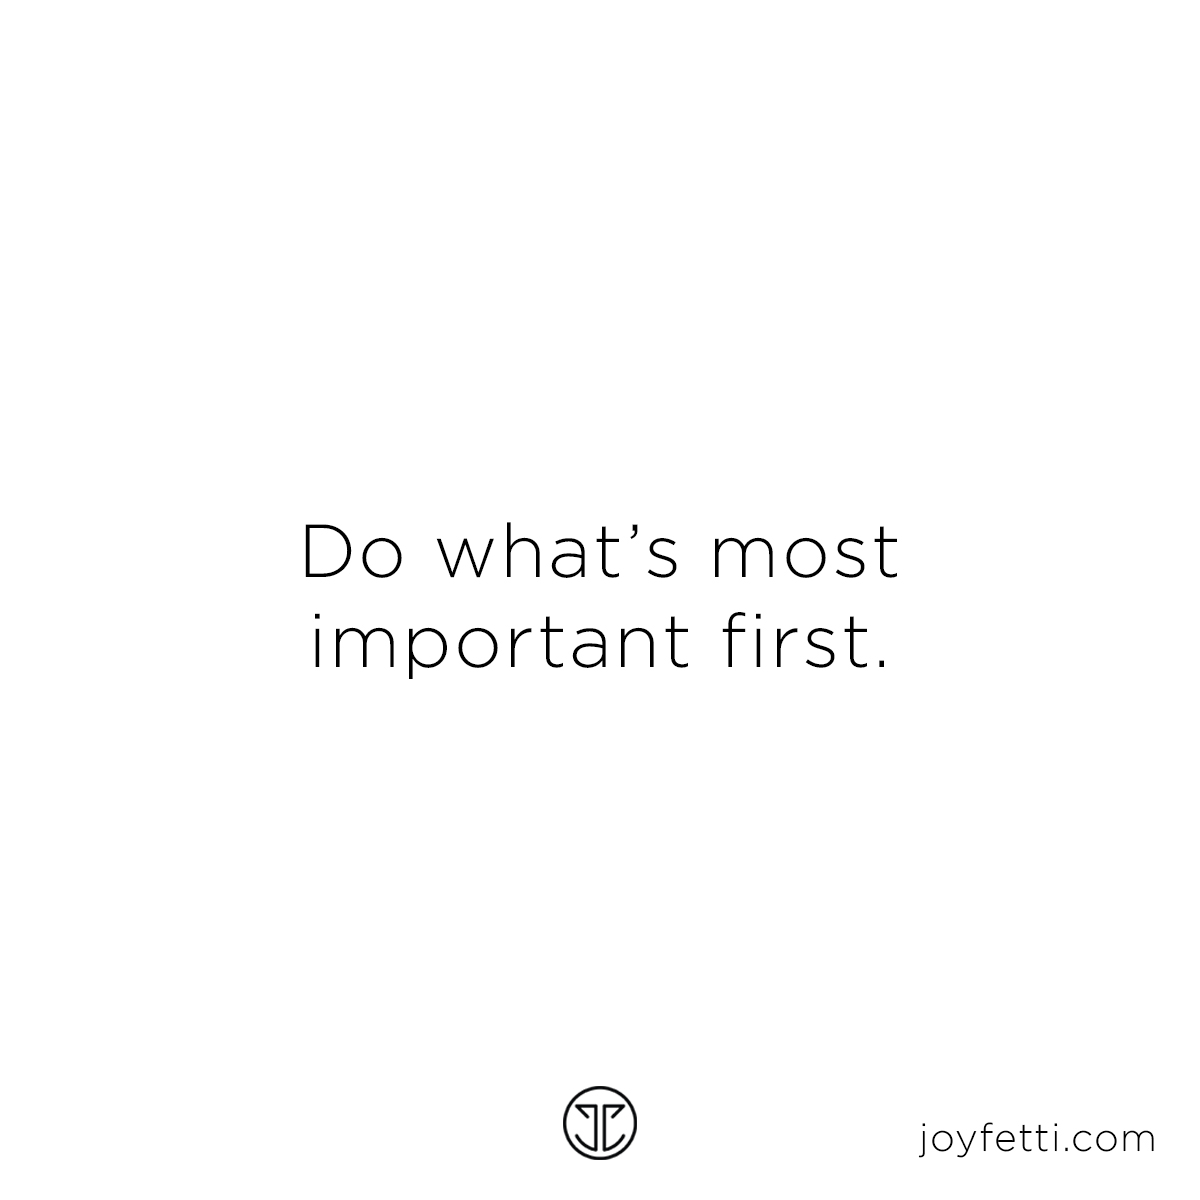 do what's most important first